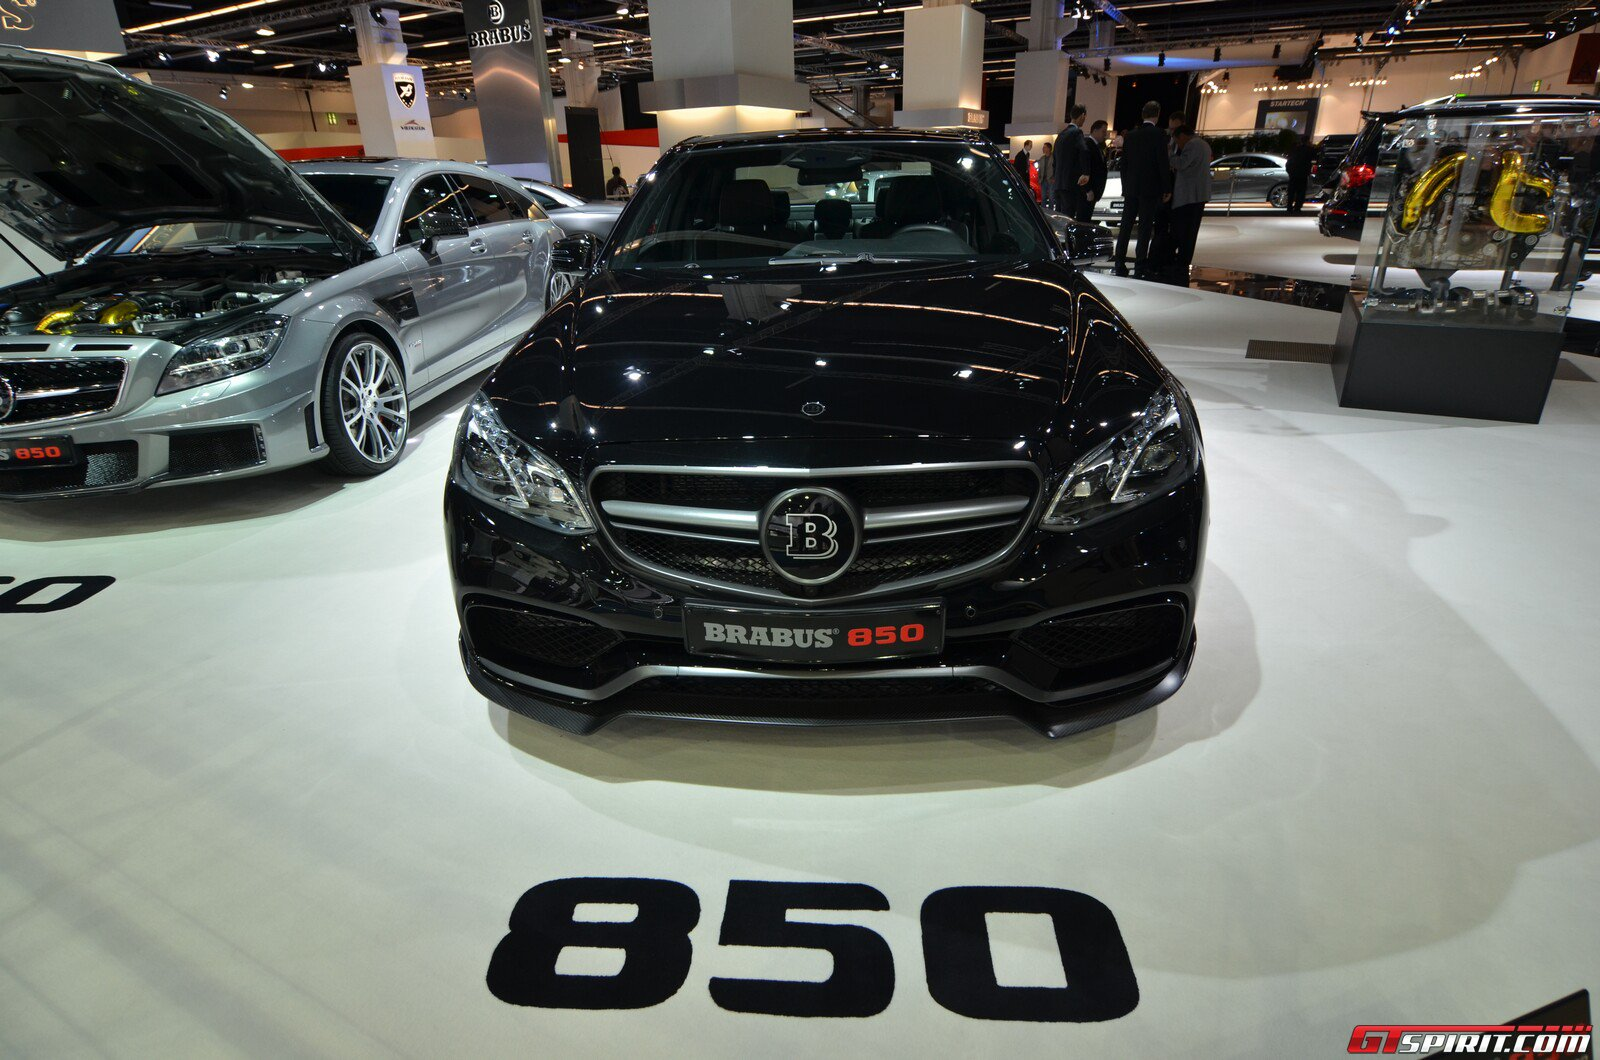 Brabus 850 6 0 Biturbo Mbworld Org Forums